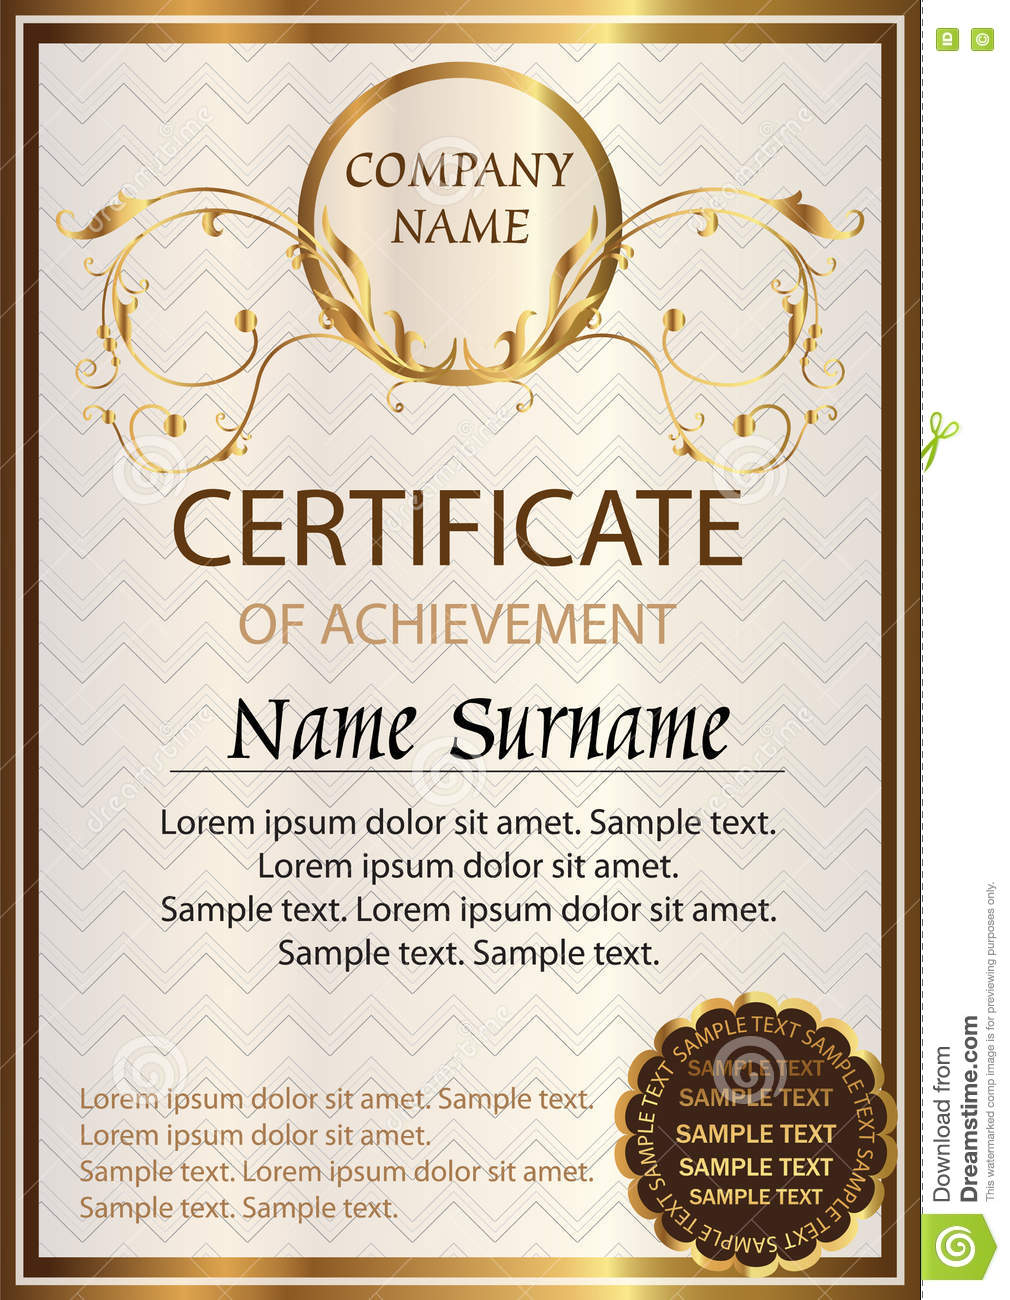 Certificate or diploma template award winner stock vector image certificate or diploma template award winner yadclub Gallery